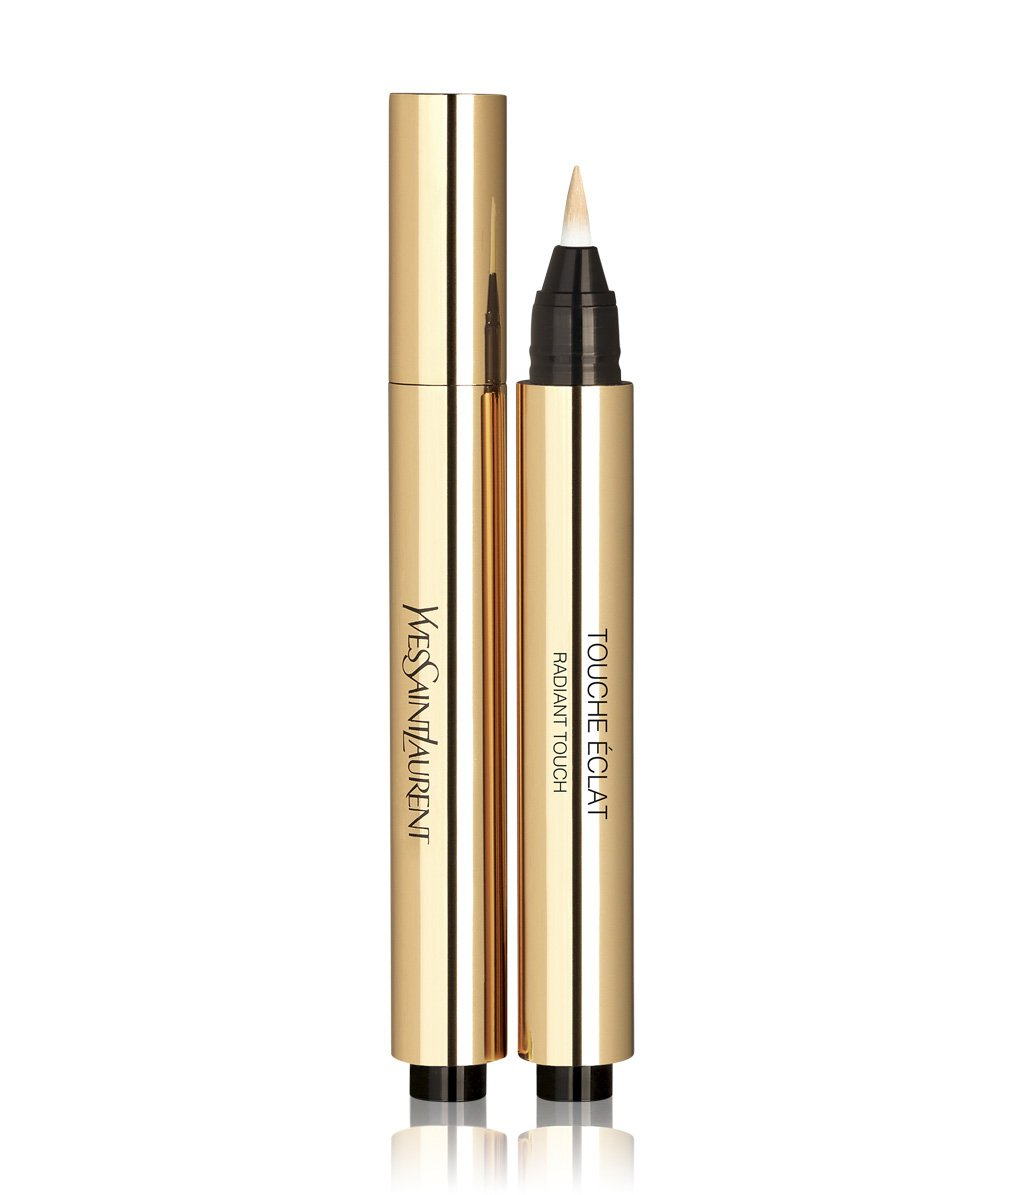 Yves Saint Laurent Touche Éclat Highlighter für Damen